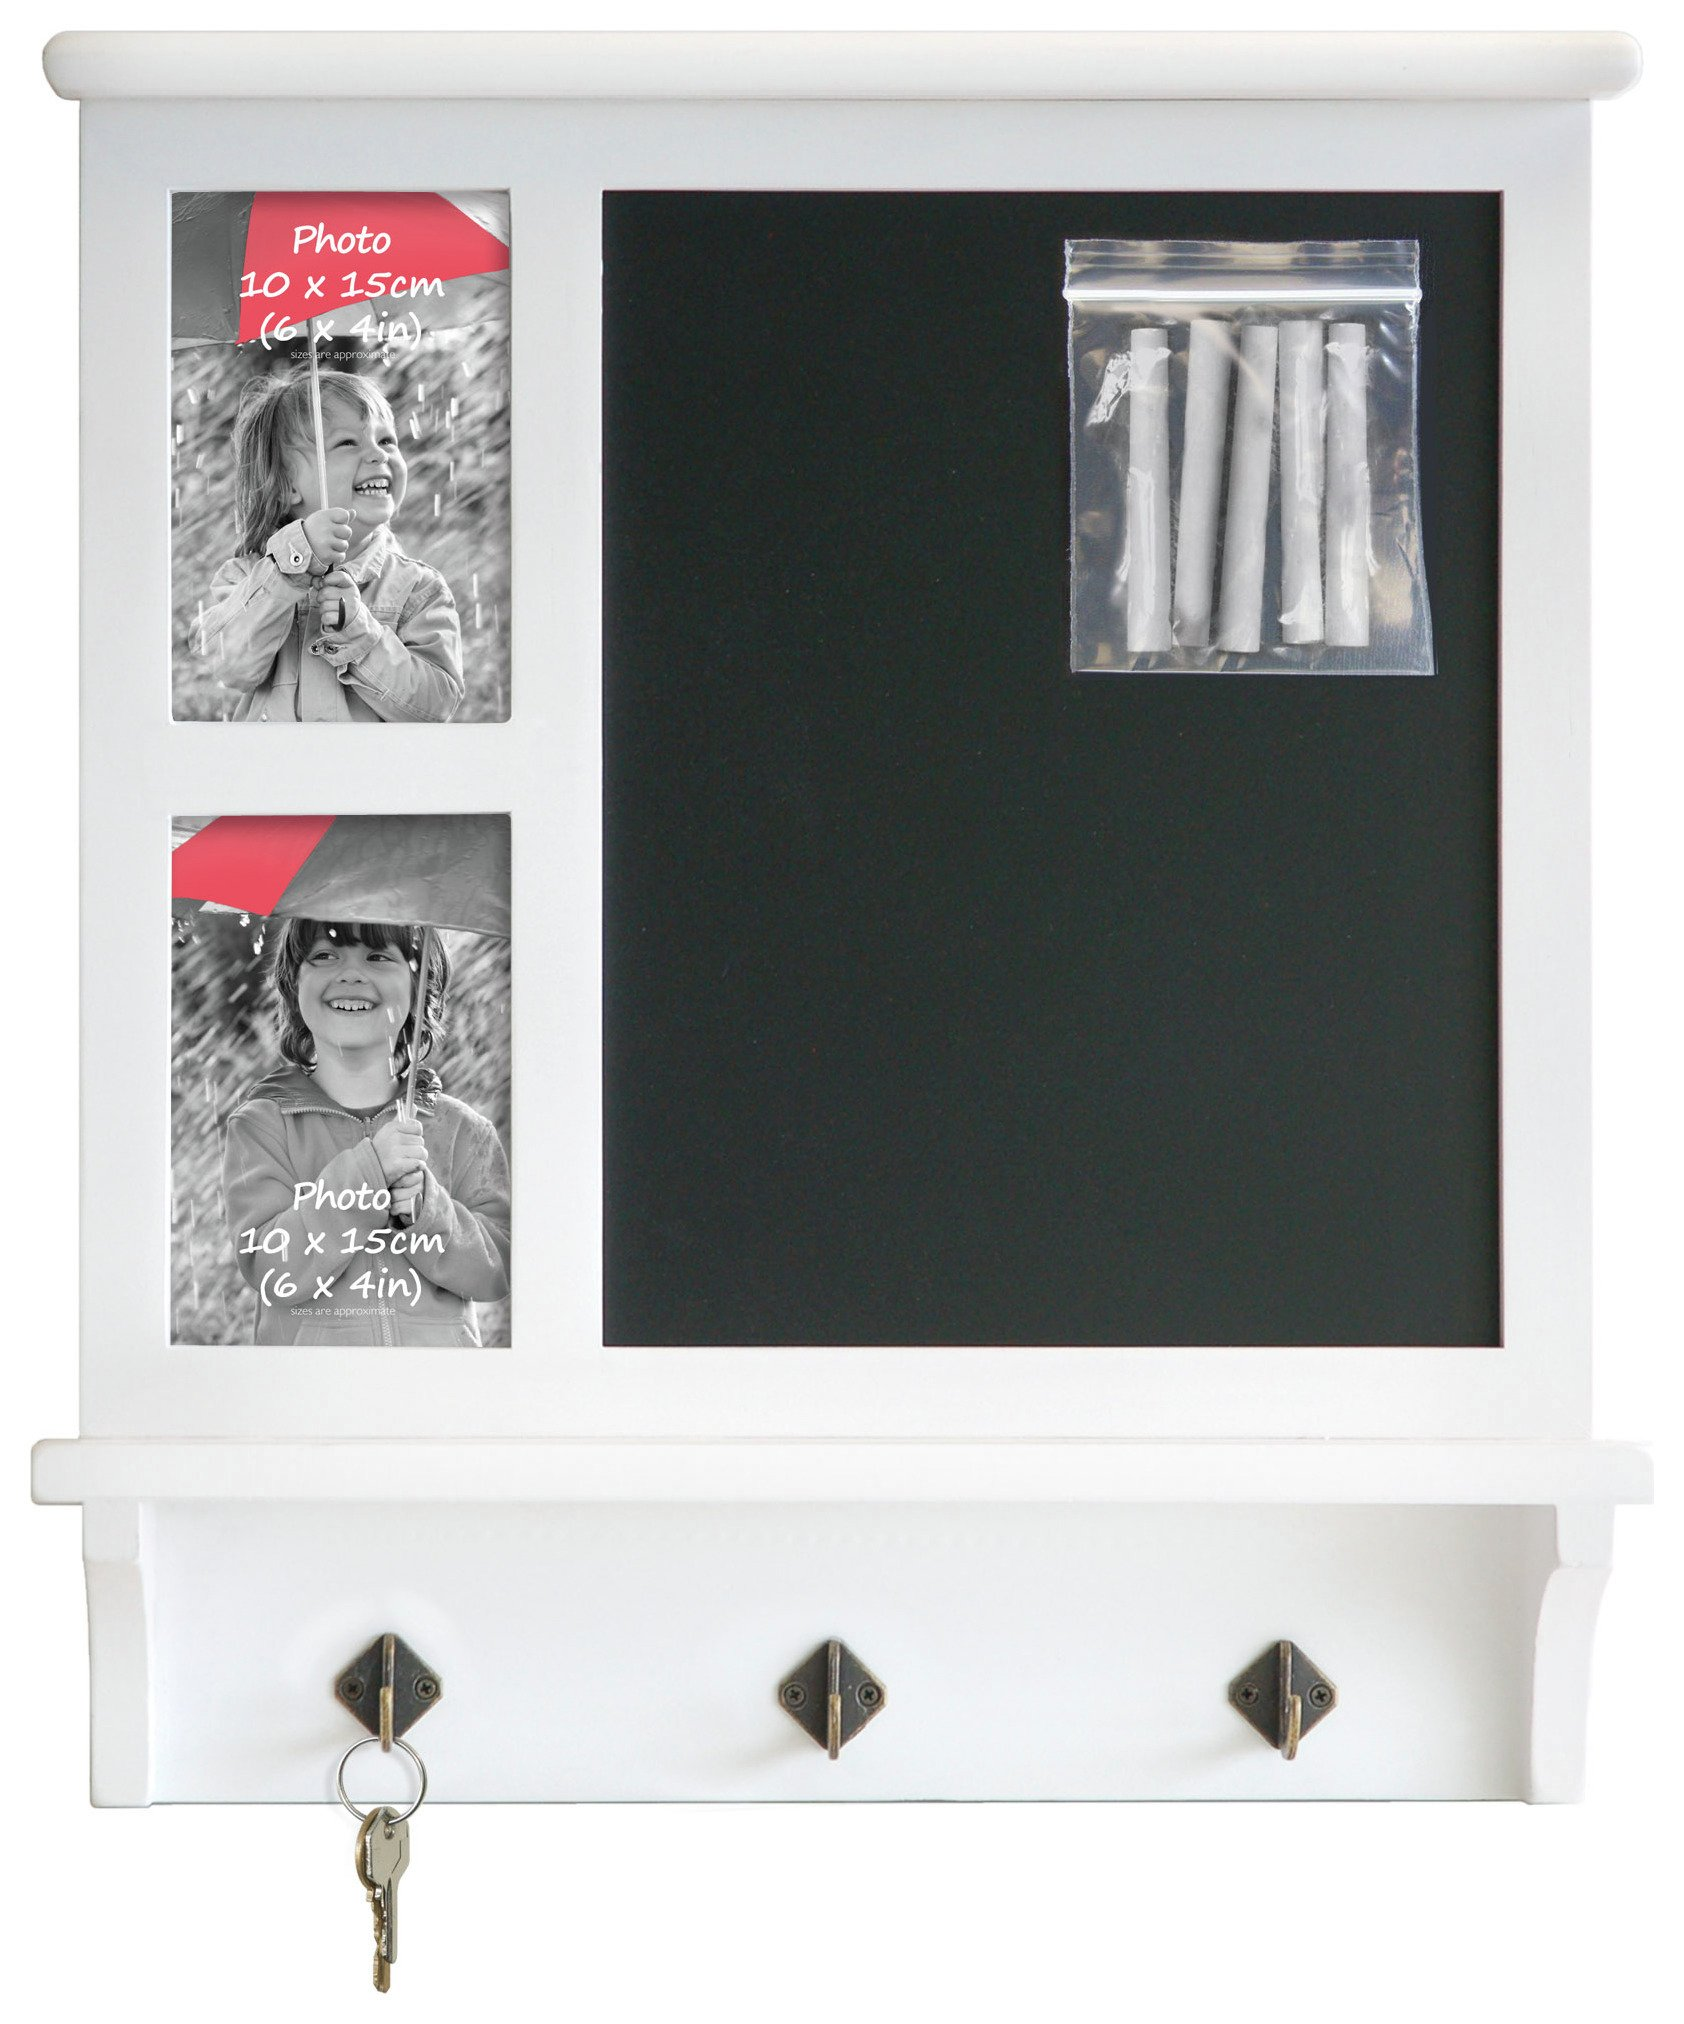 Image of Chalkboard Photo Frame & Keyhook Rack.